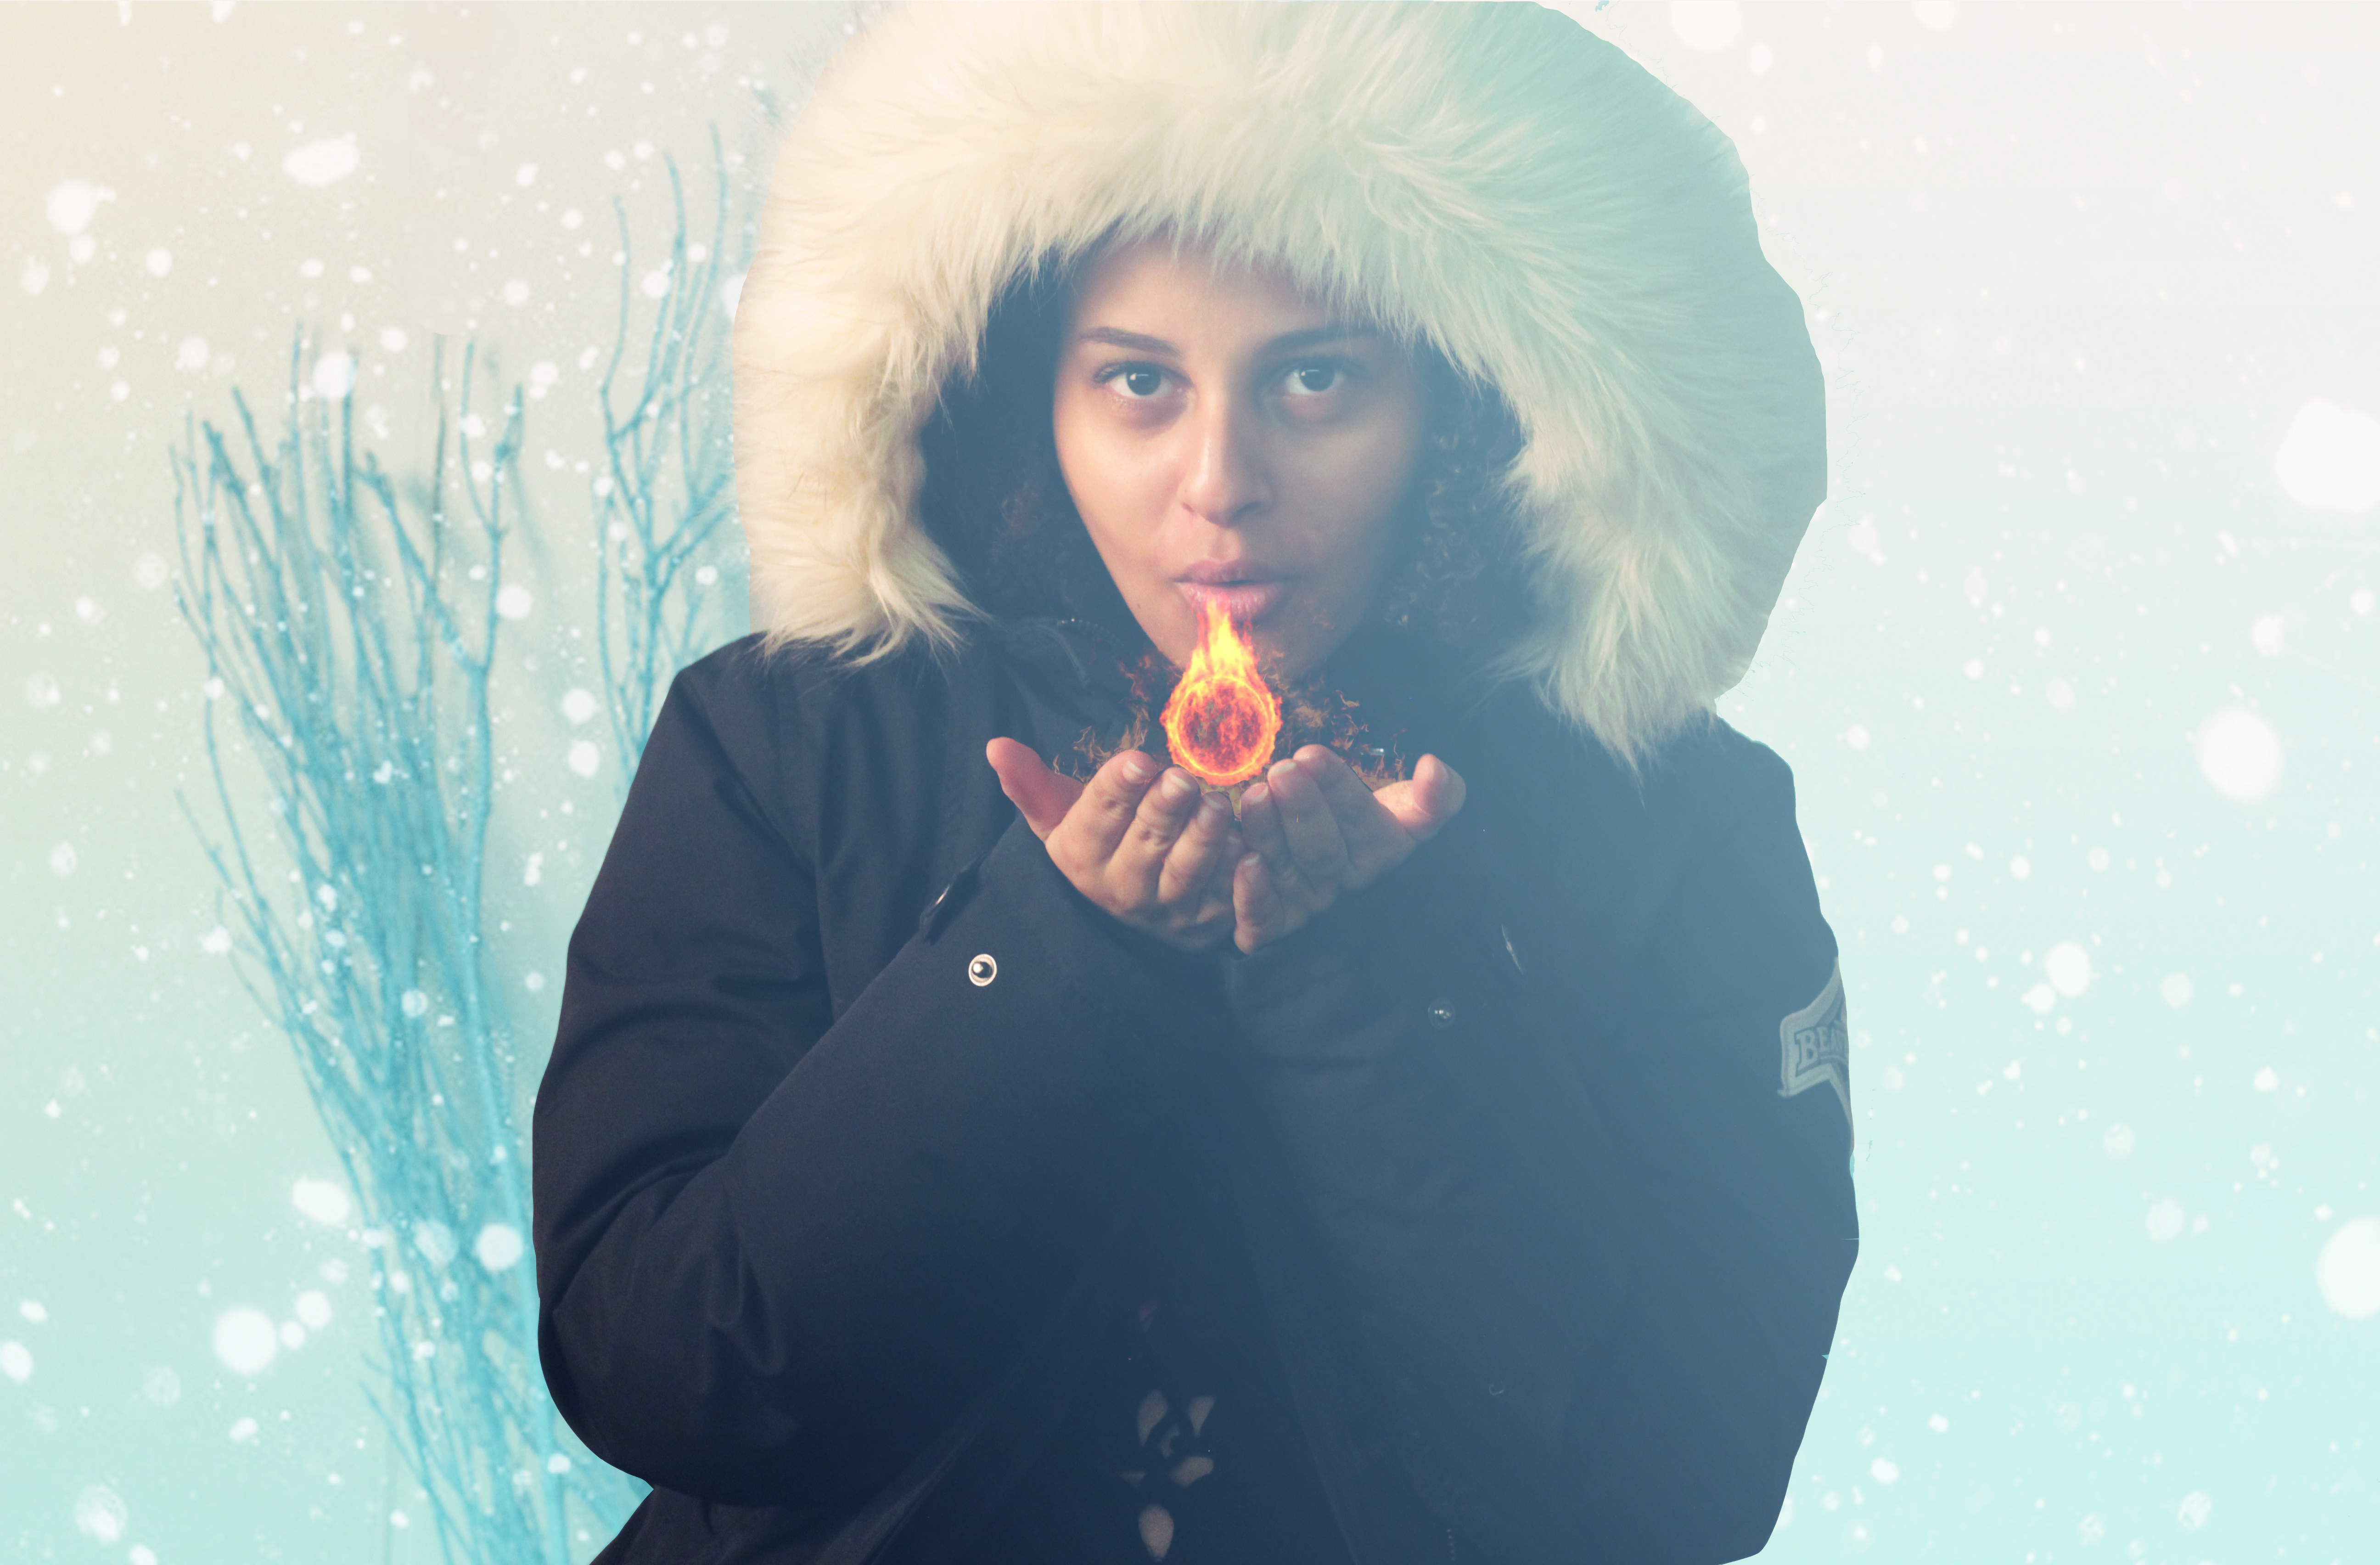 hooded girl in the snow with flame